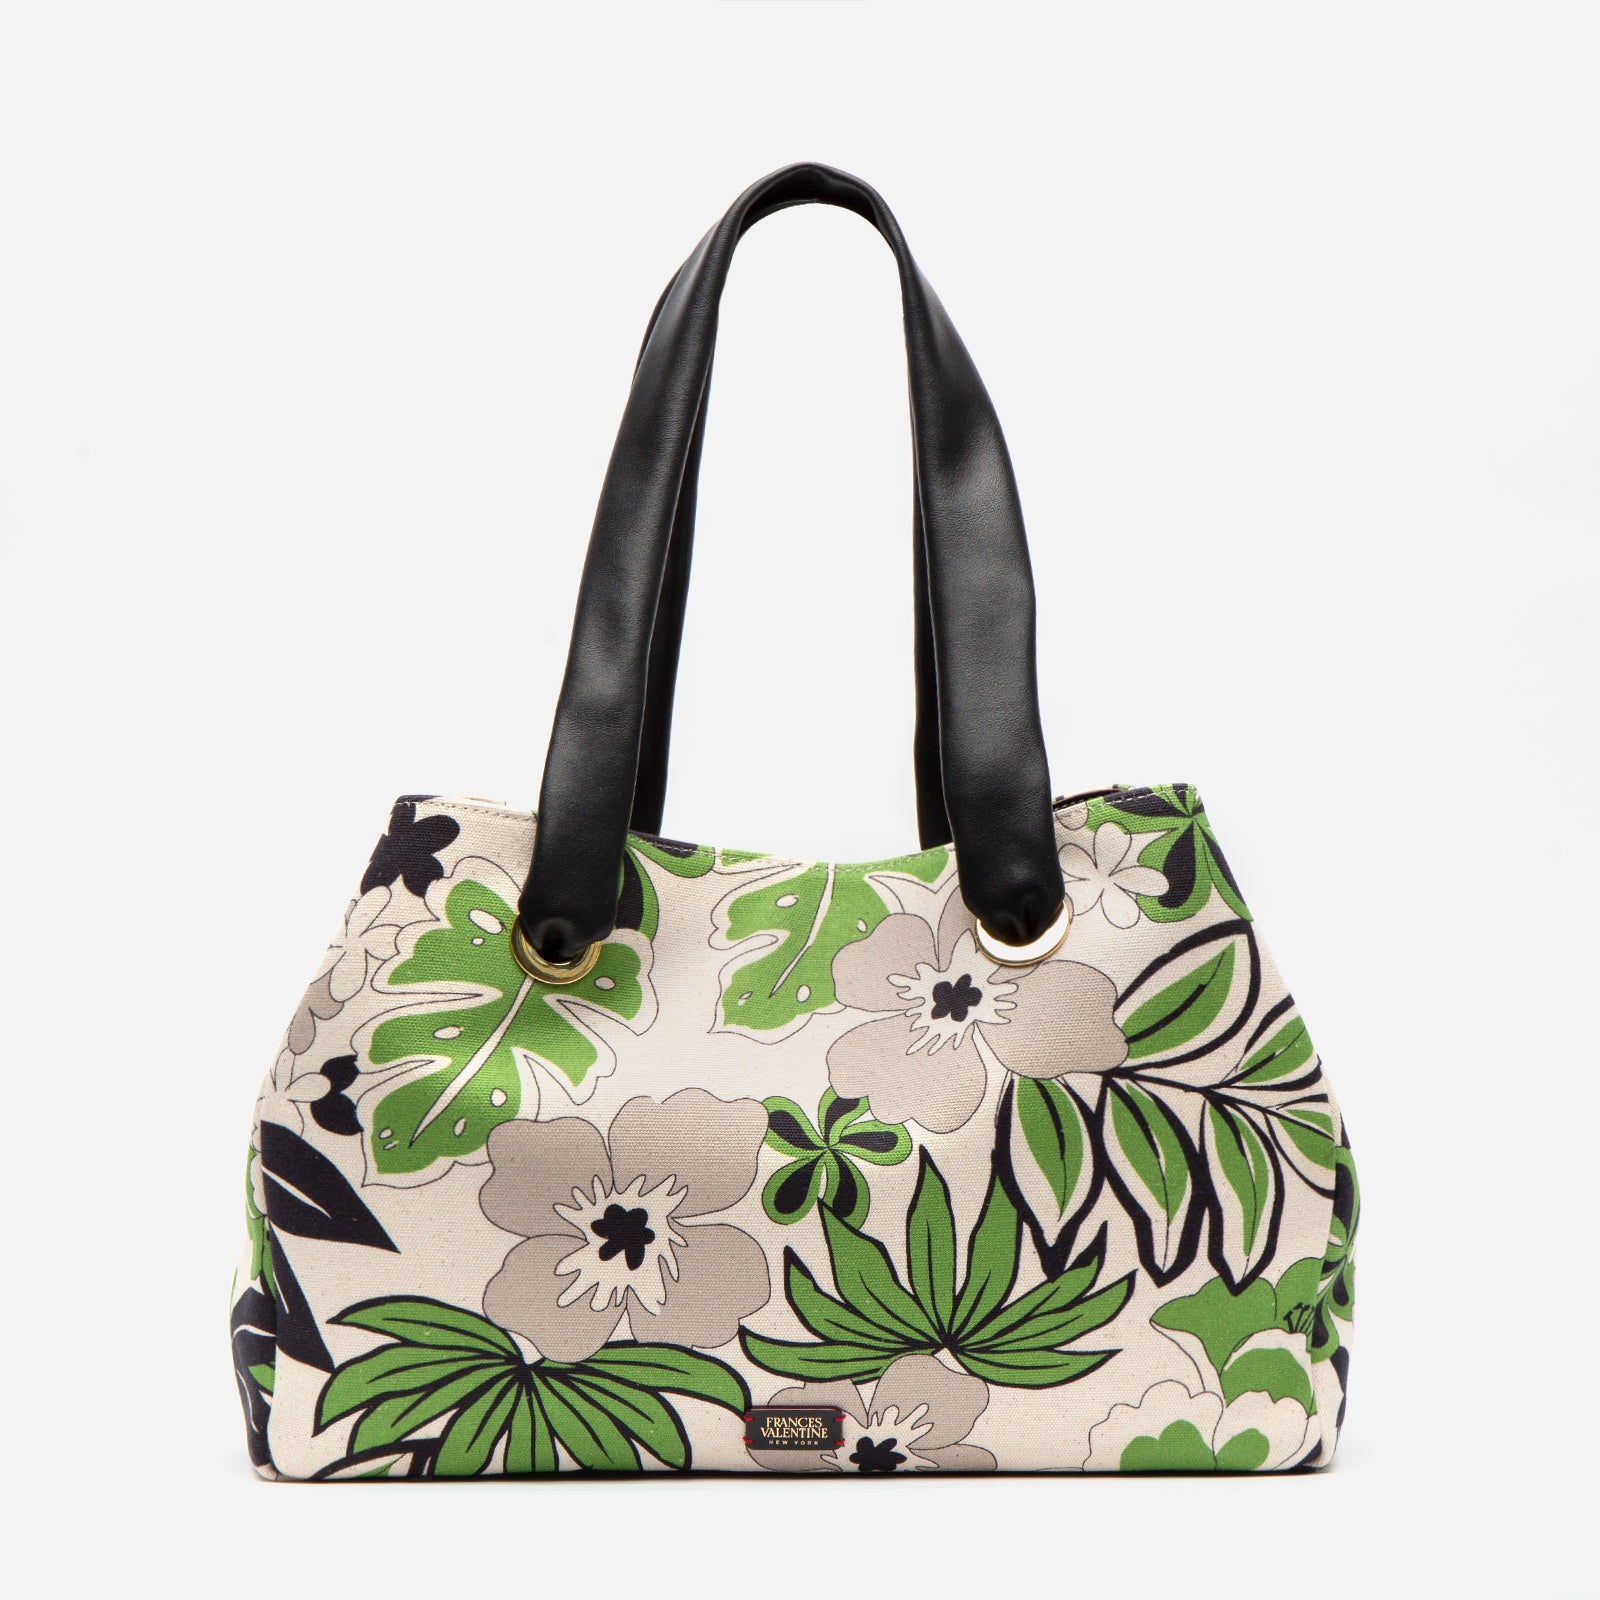 Selma Tote Bag Merida Leaf Canvas - Frances Valentine